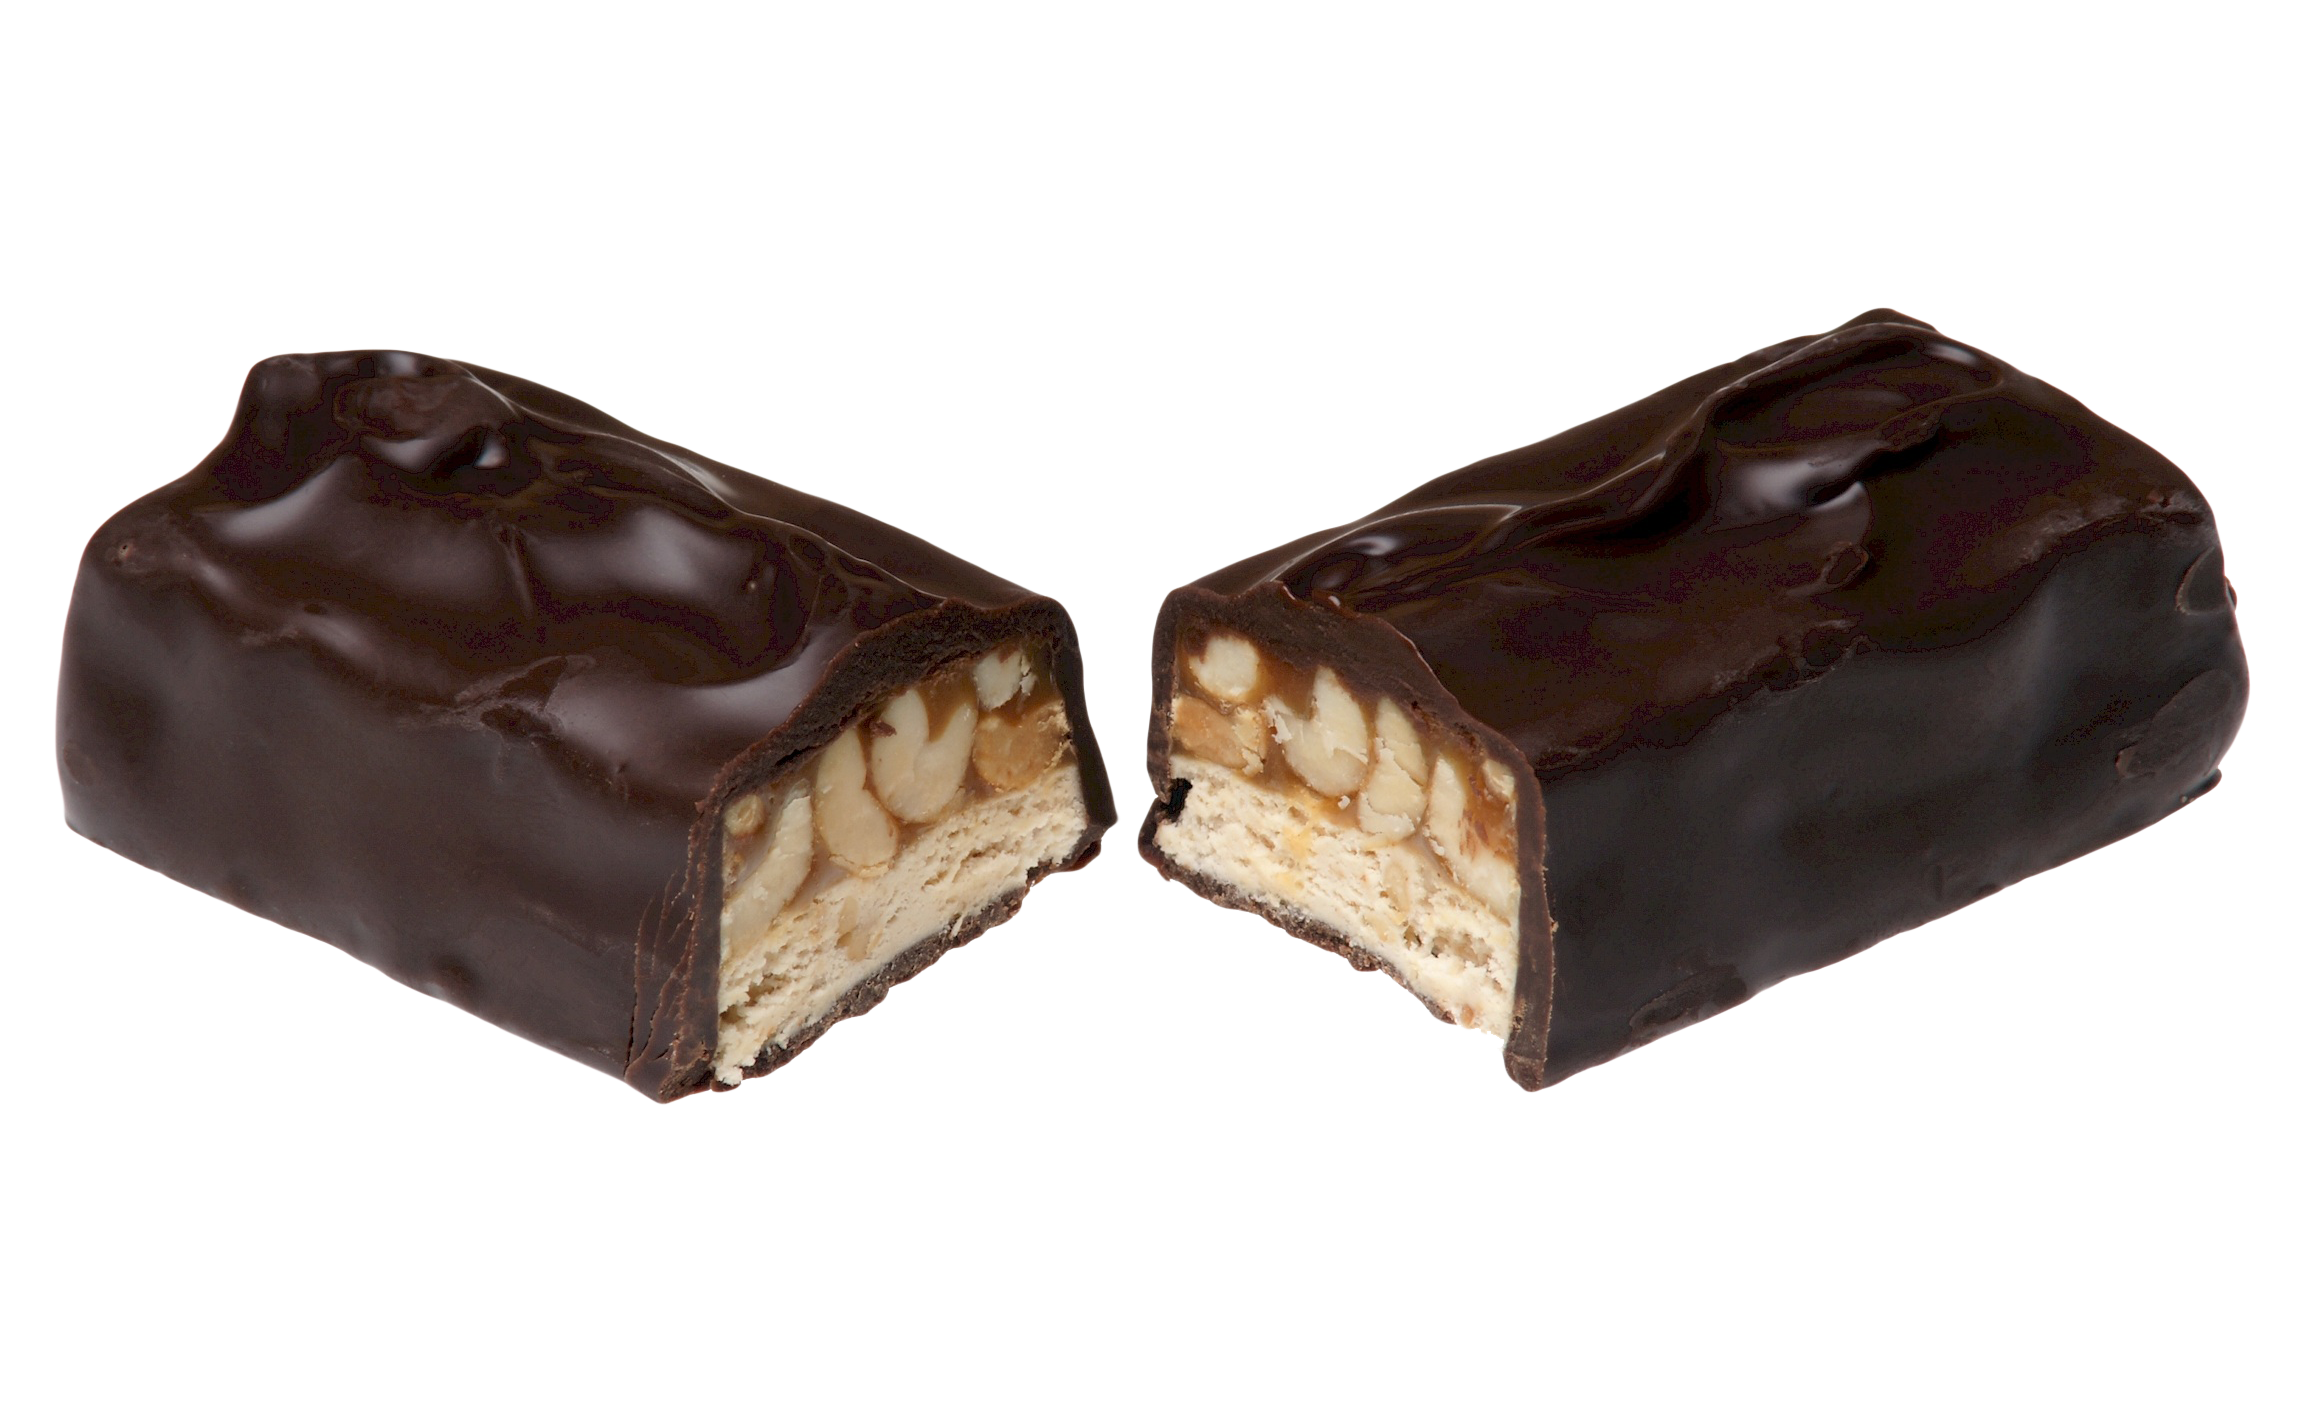 Chocolate Candy Bar PNG Image